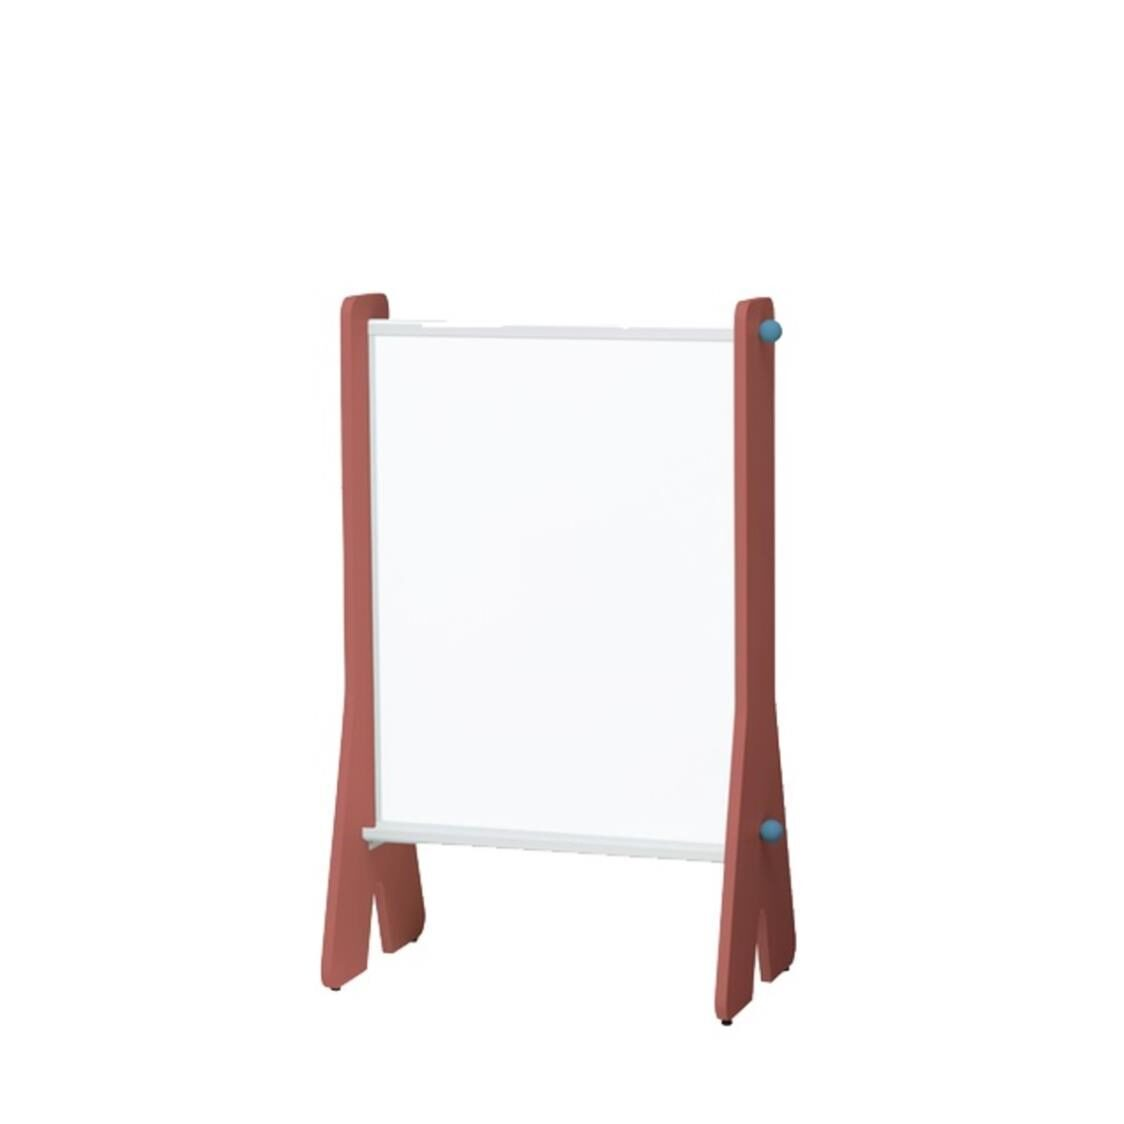 Iloom Tinkle Pop White Board KRKS Red Sky Blue